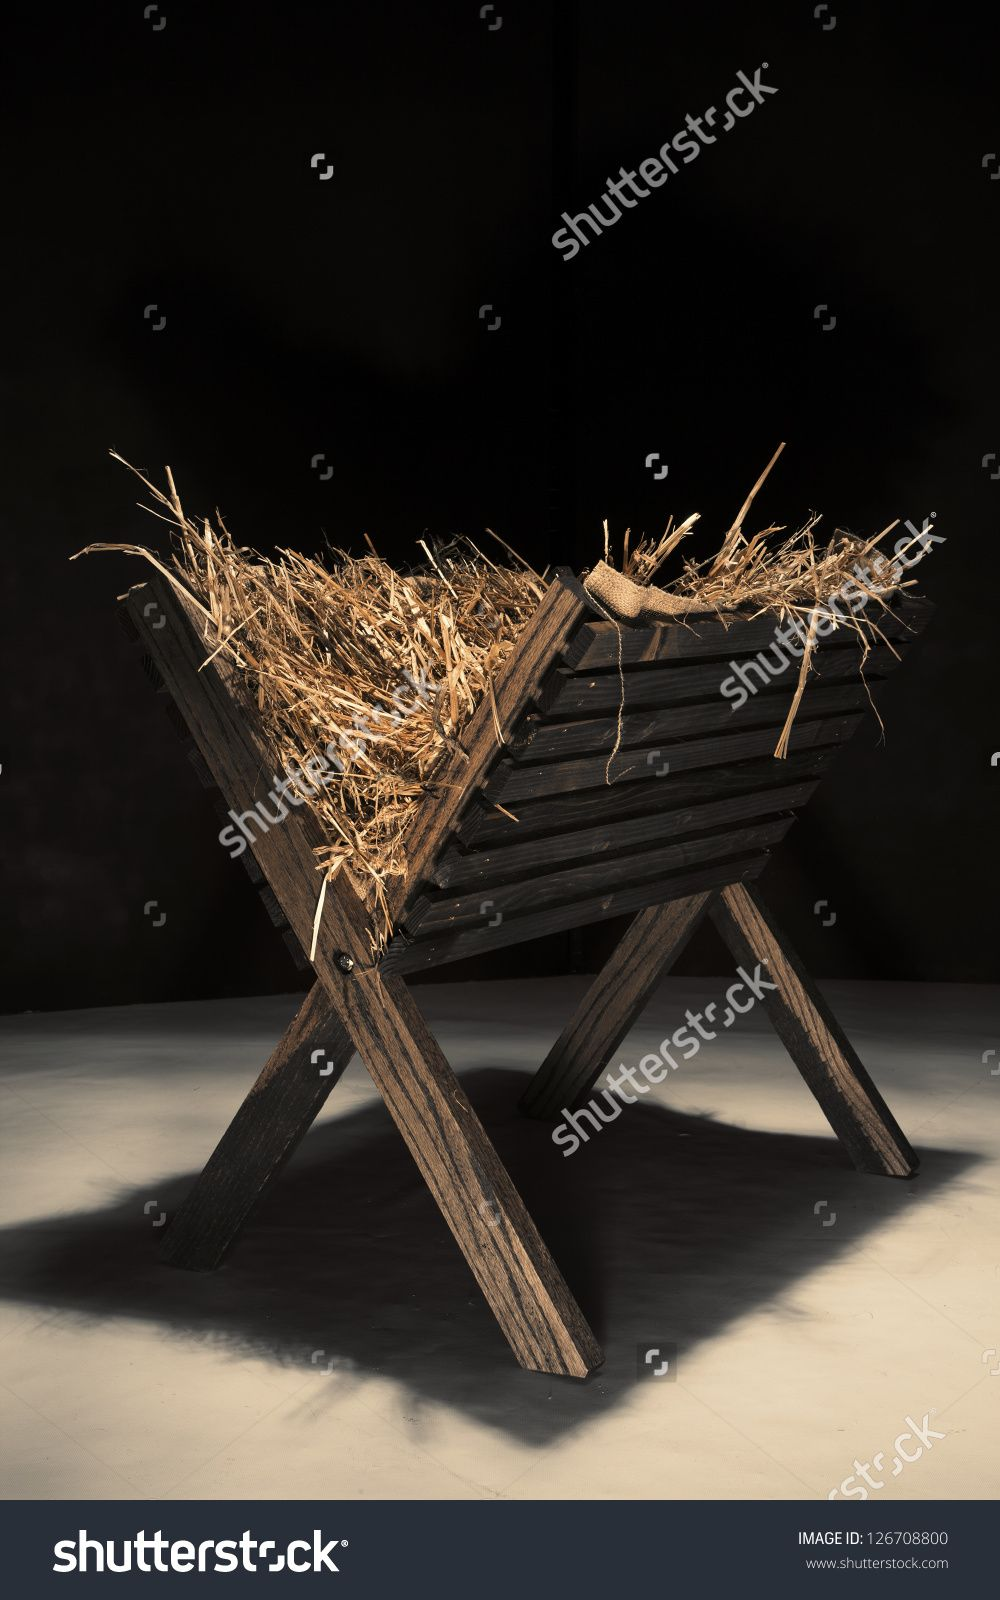 Manger Stock Photos, Images, & Pictures | Shutterstock